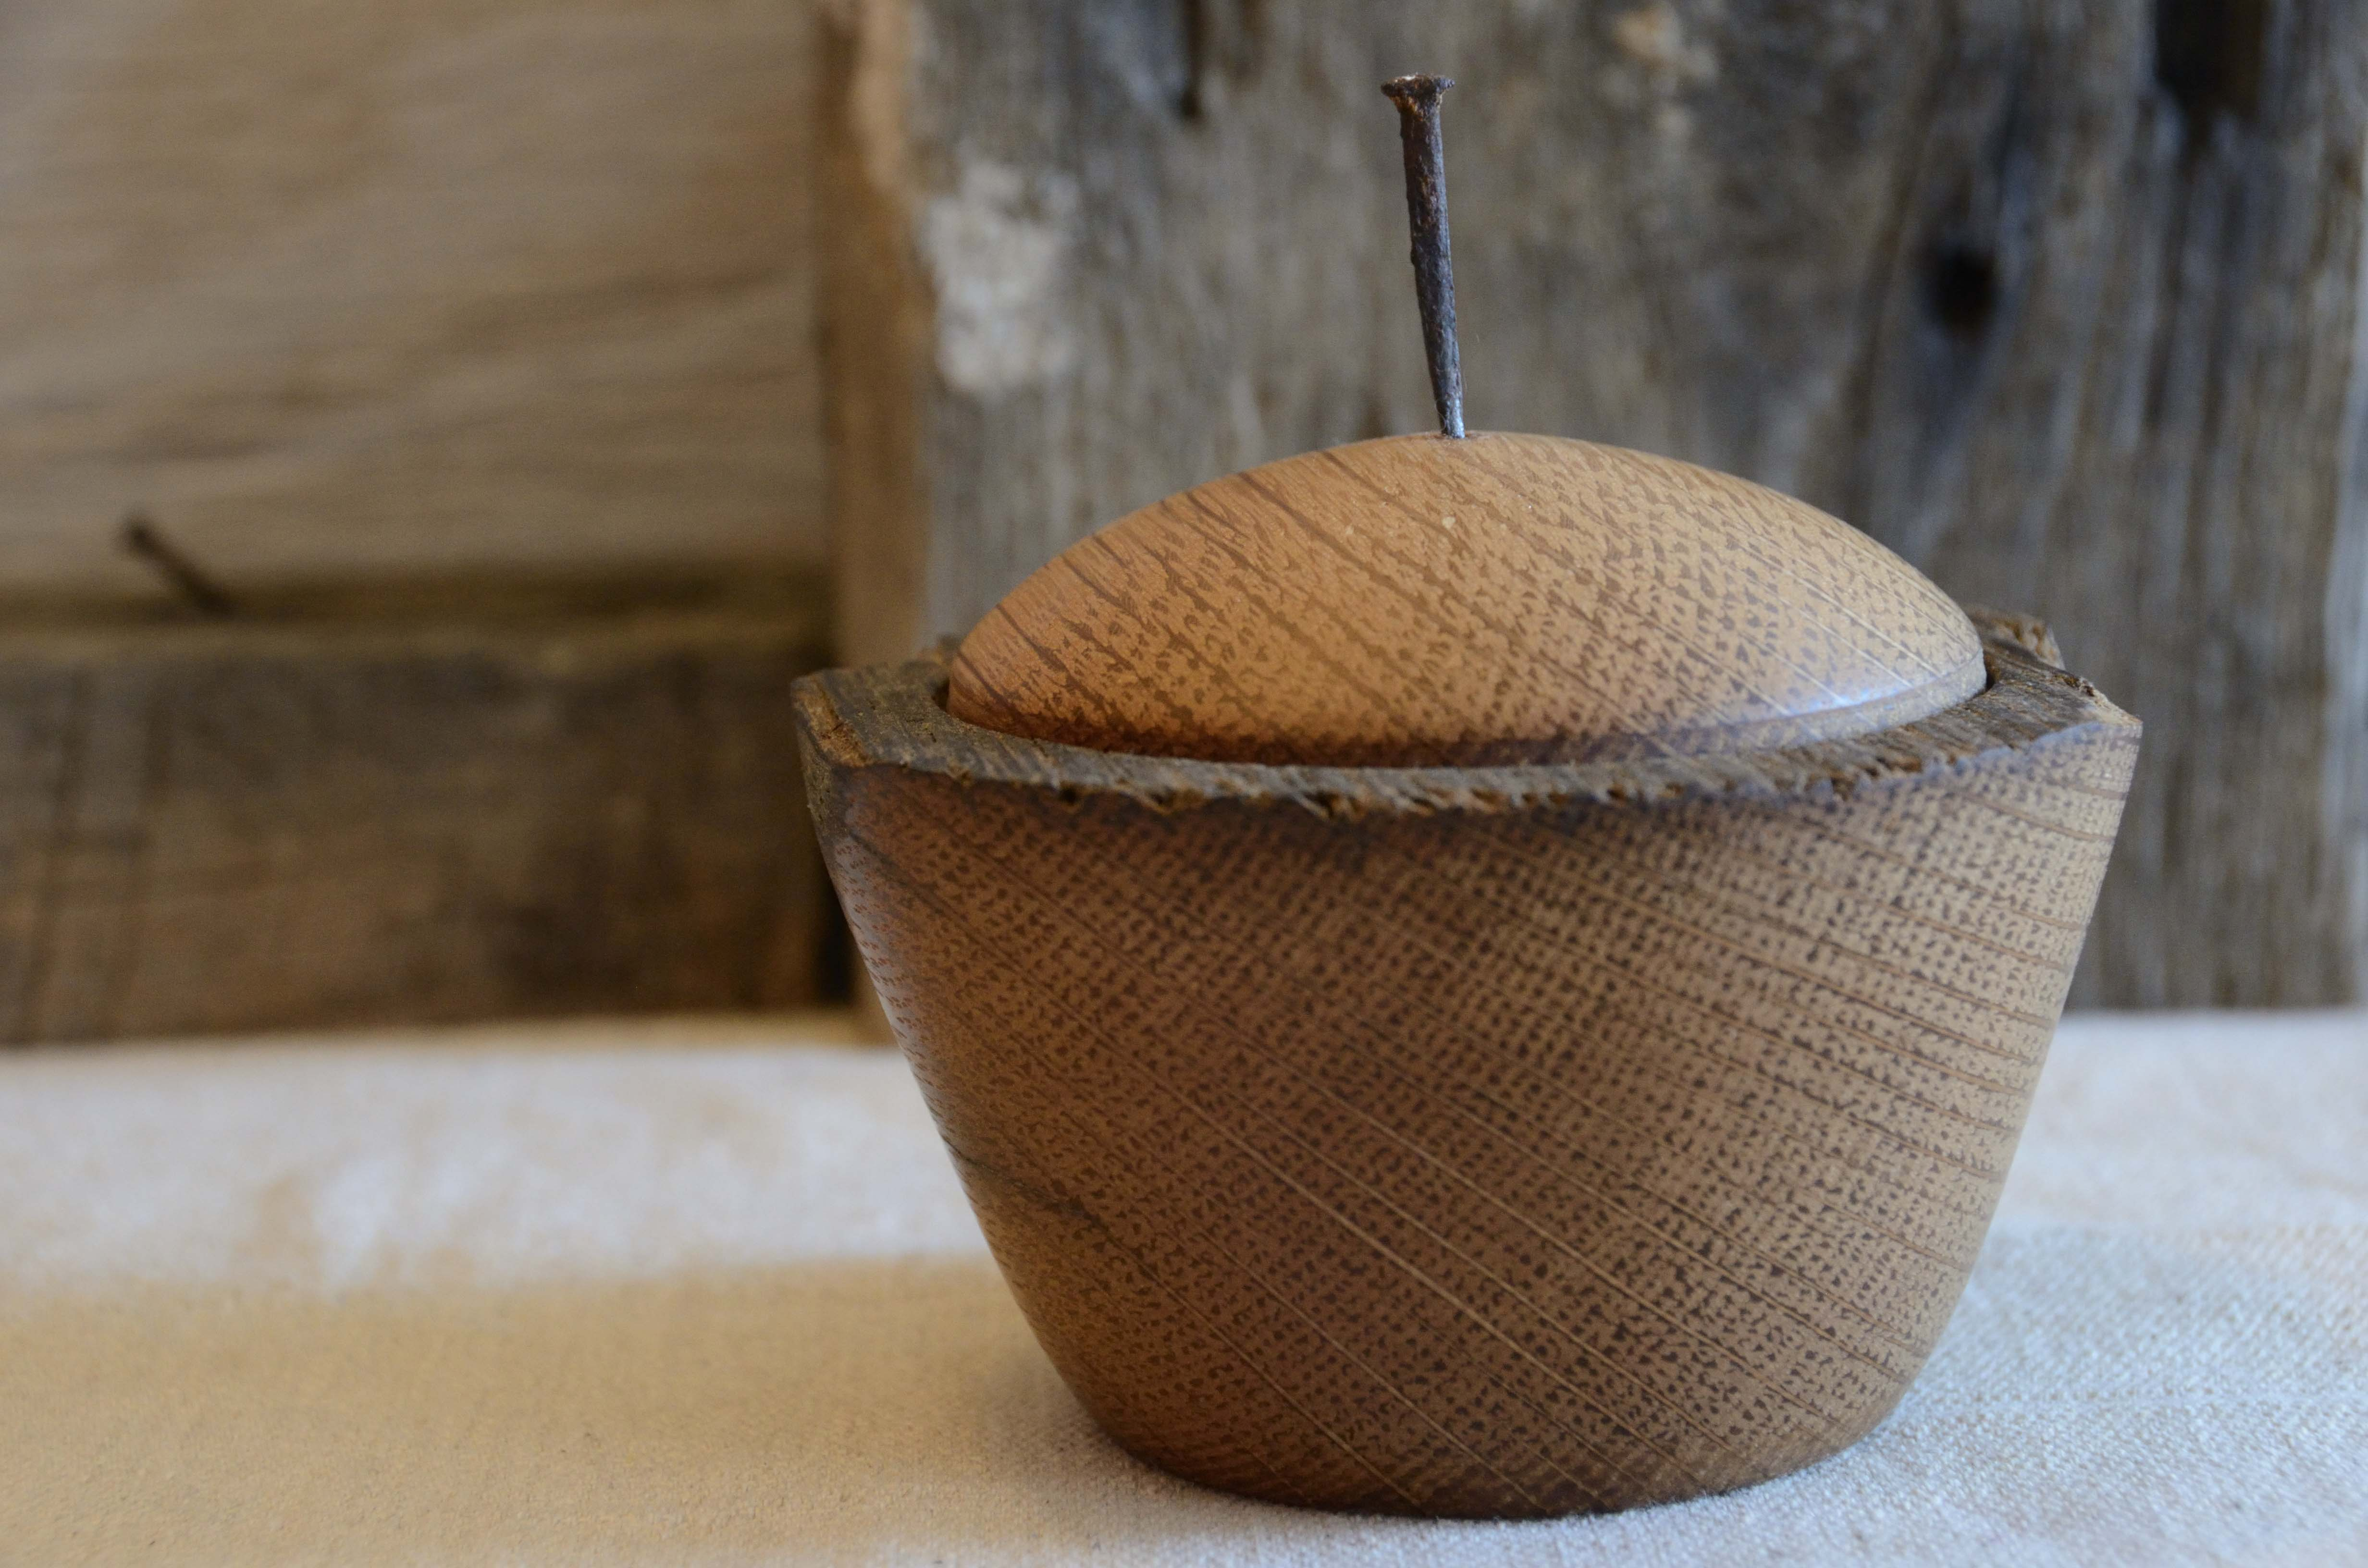 woodturned lidded vessel made of oak from a 100-year-old barn.